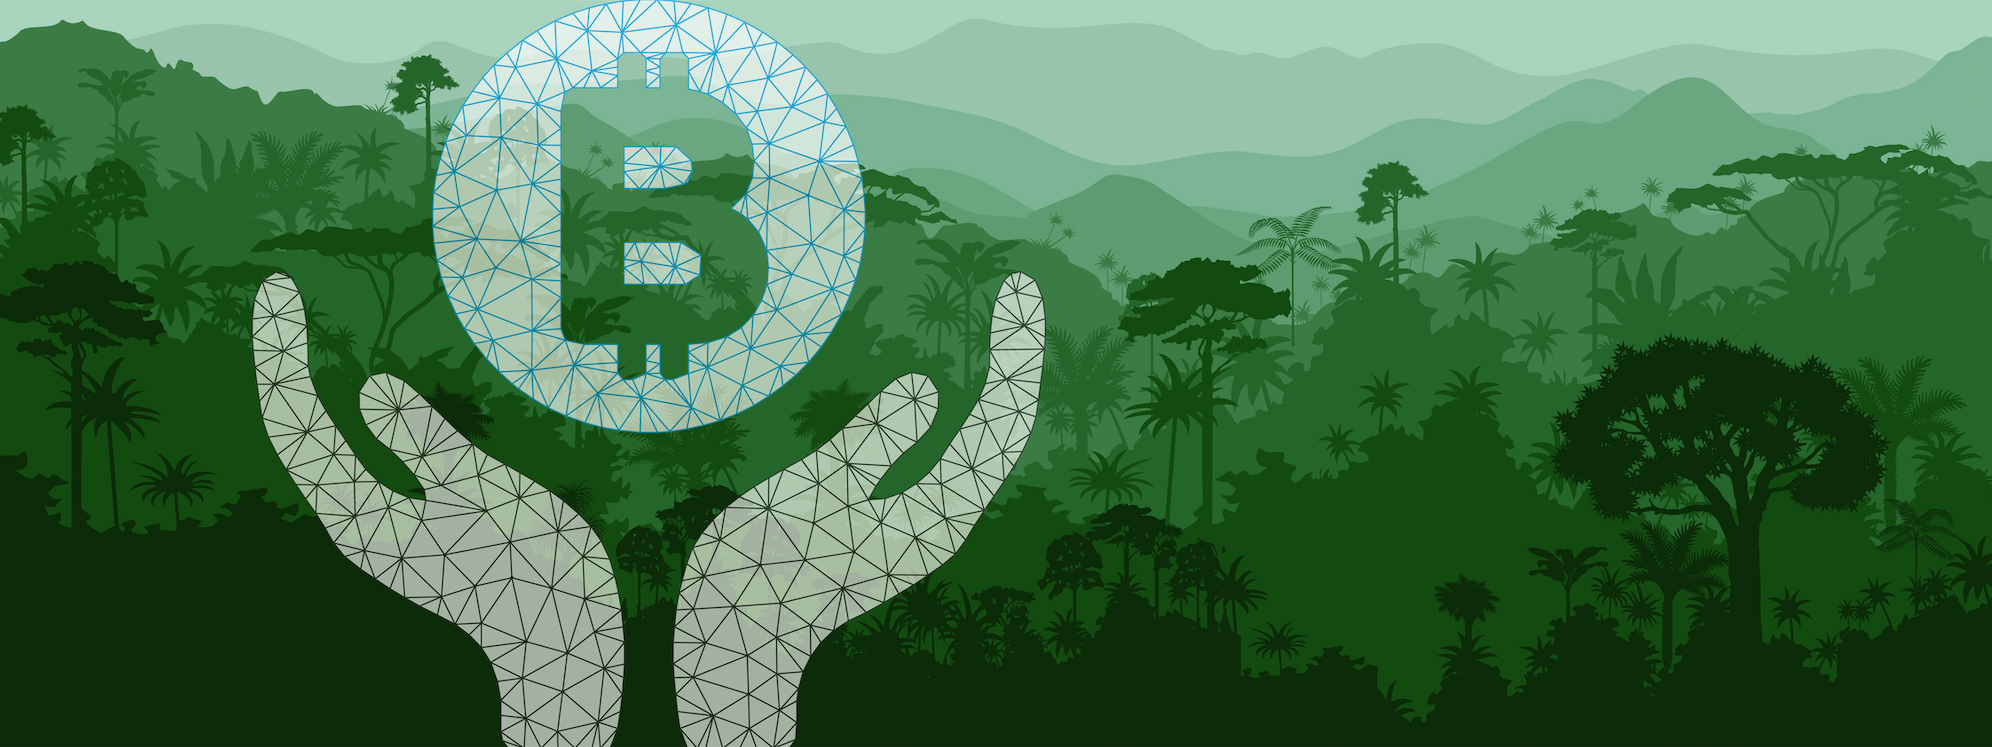 Donate to Protect the Rainforest with Bitcoin